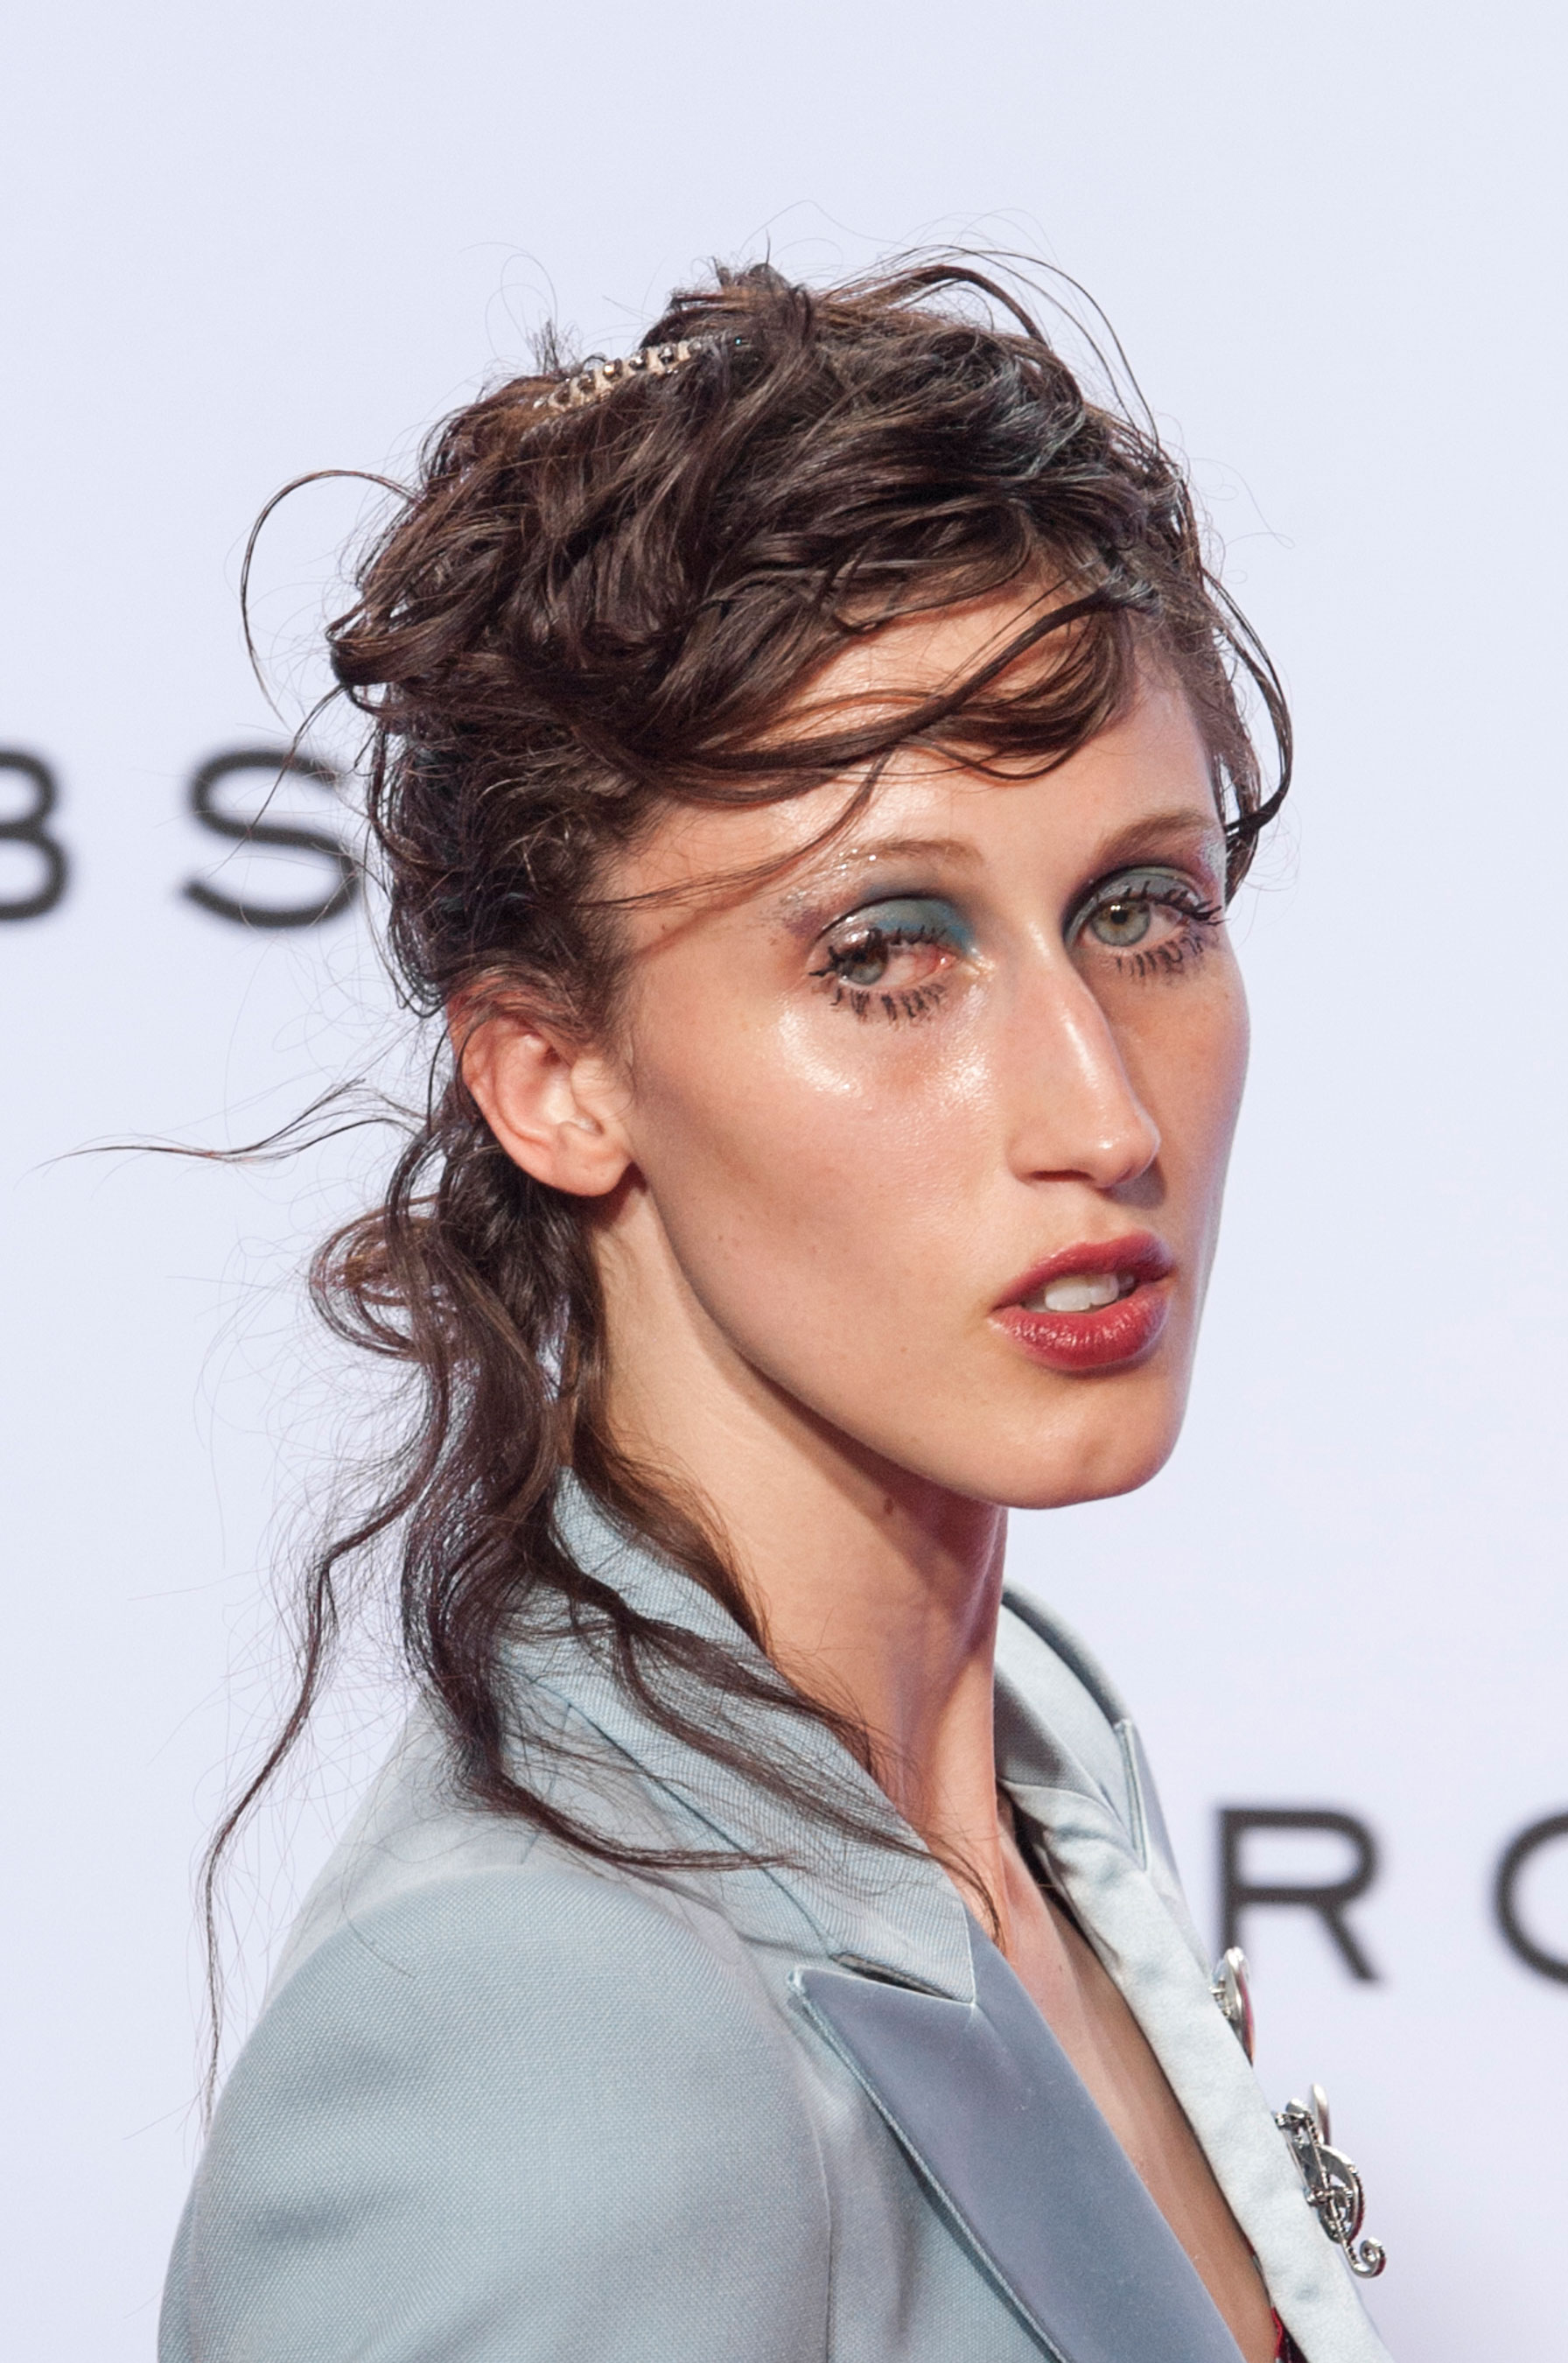 marc-jacobs-spring-2016-runway-beauty-fashion-show-the-impression-45